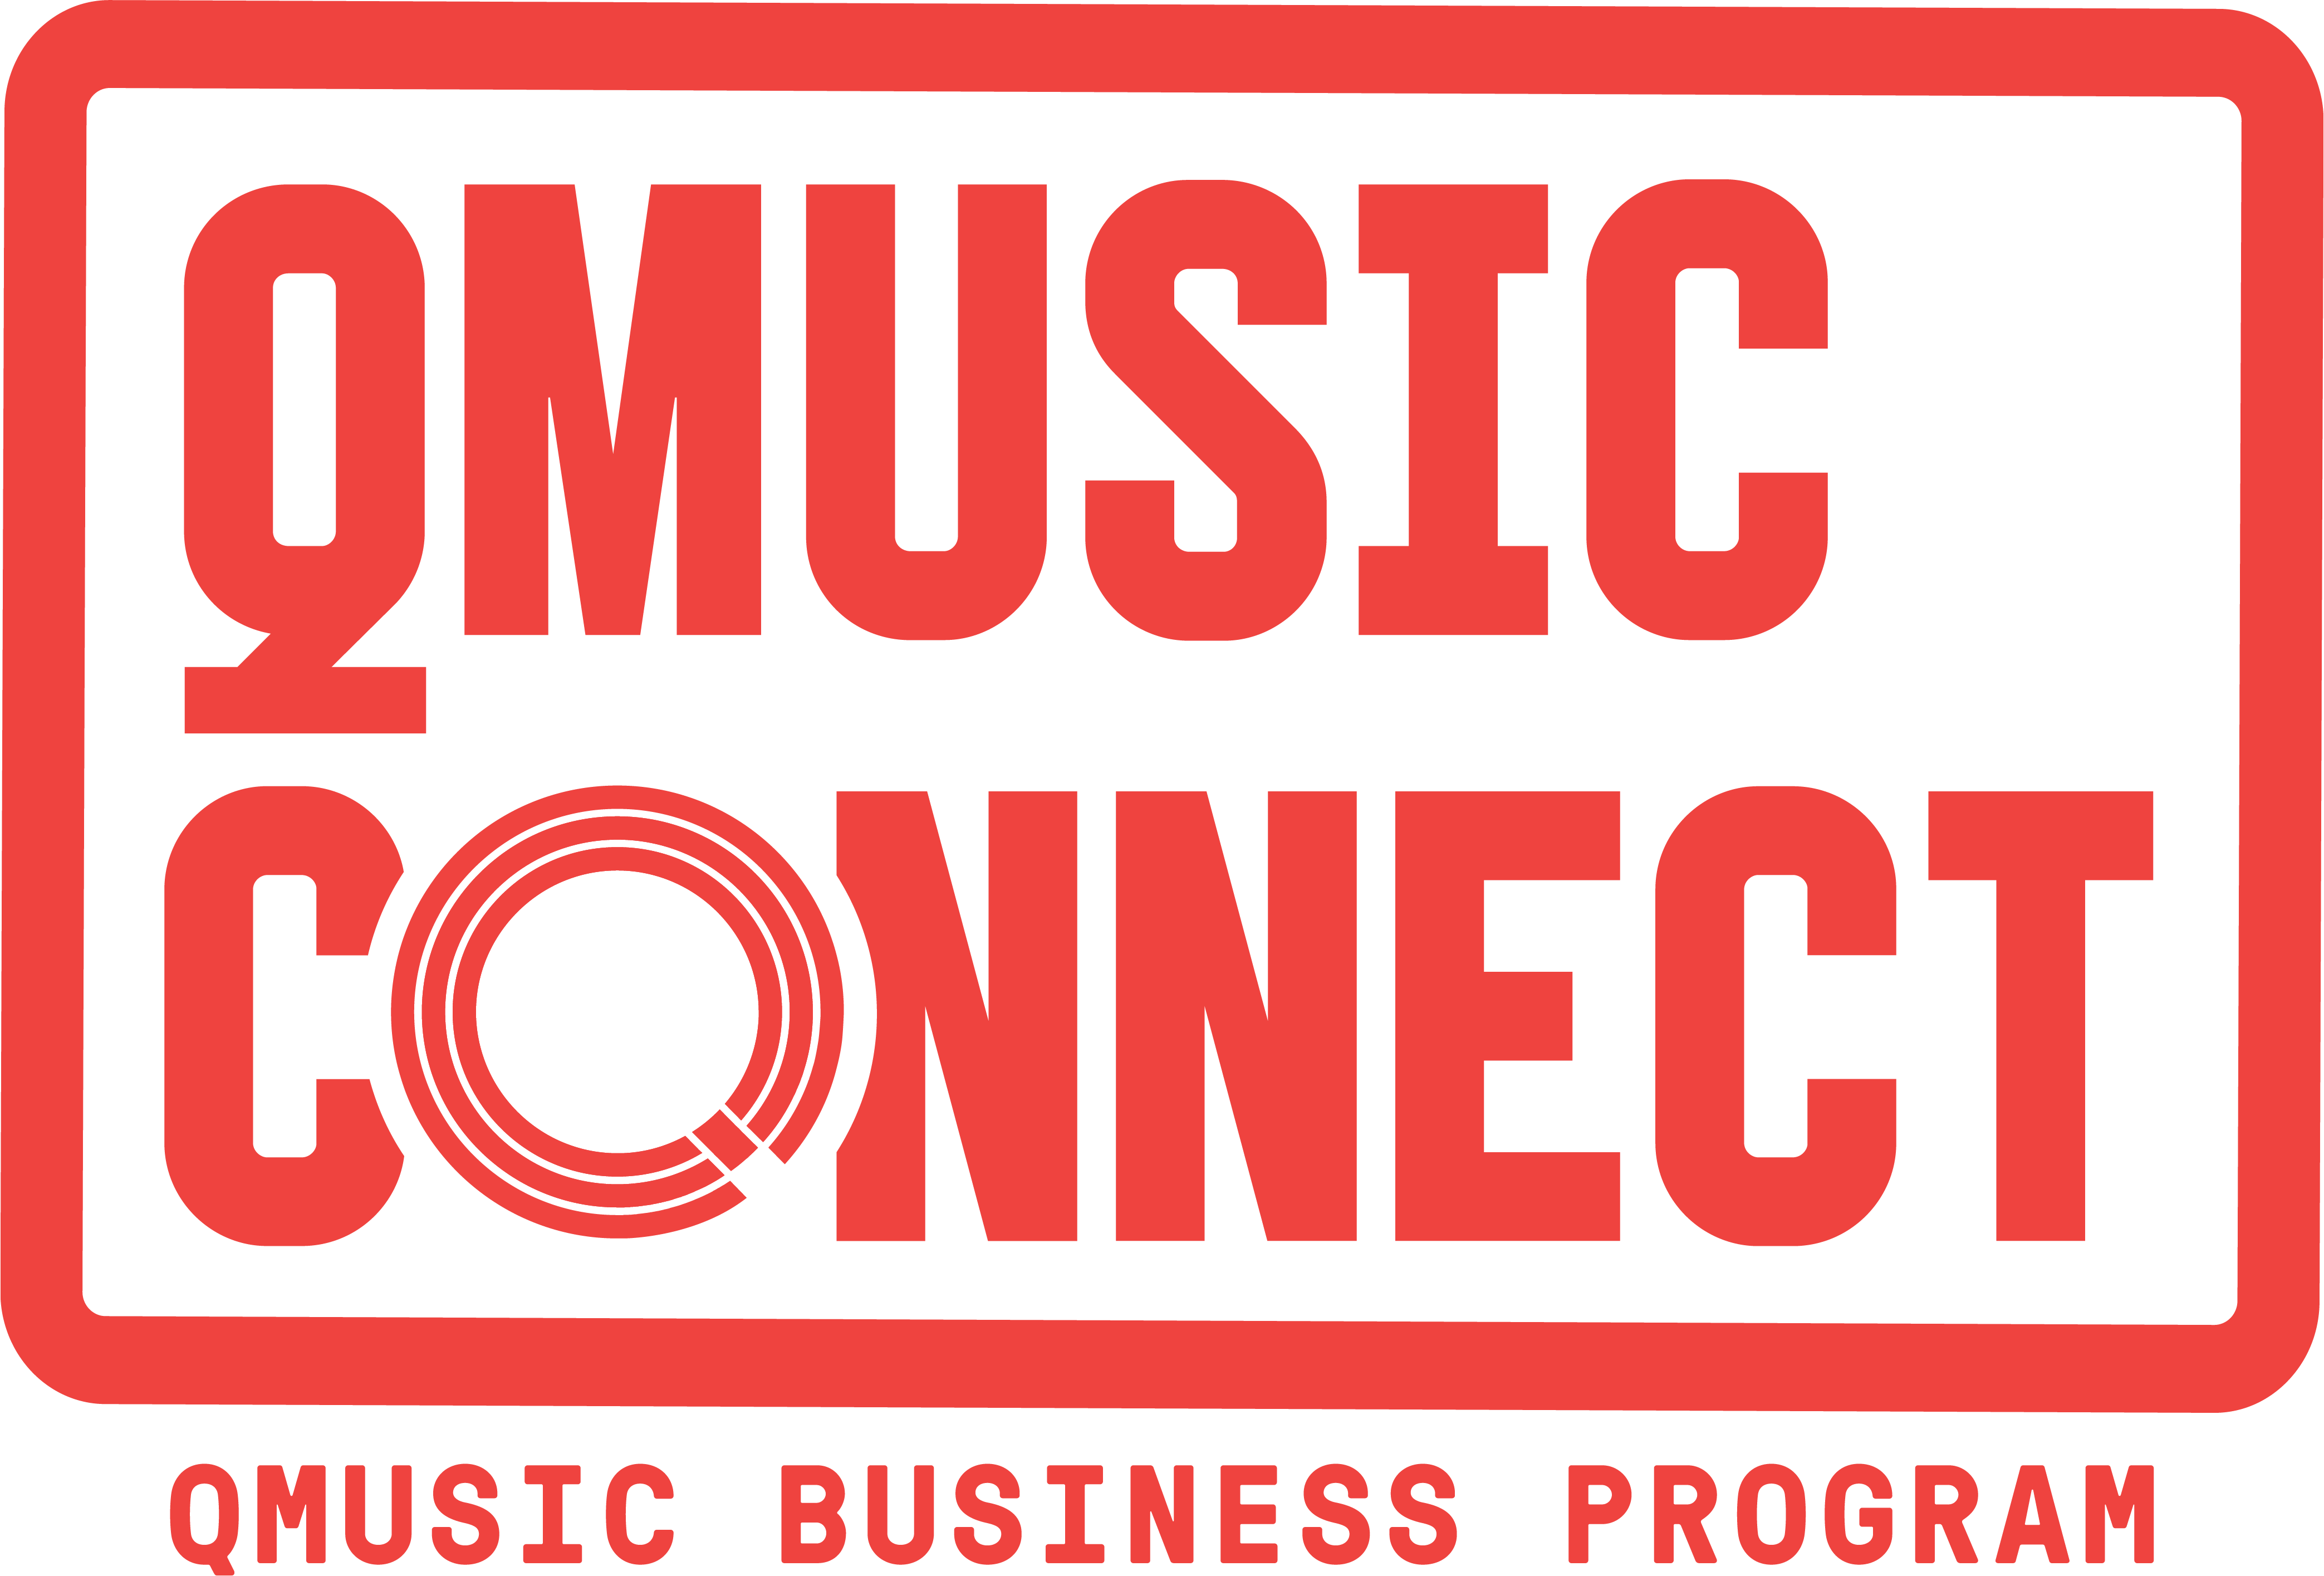 QMusic Connect